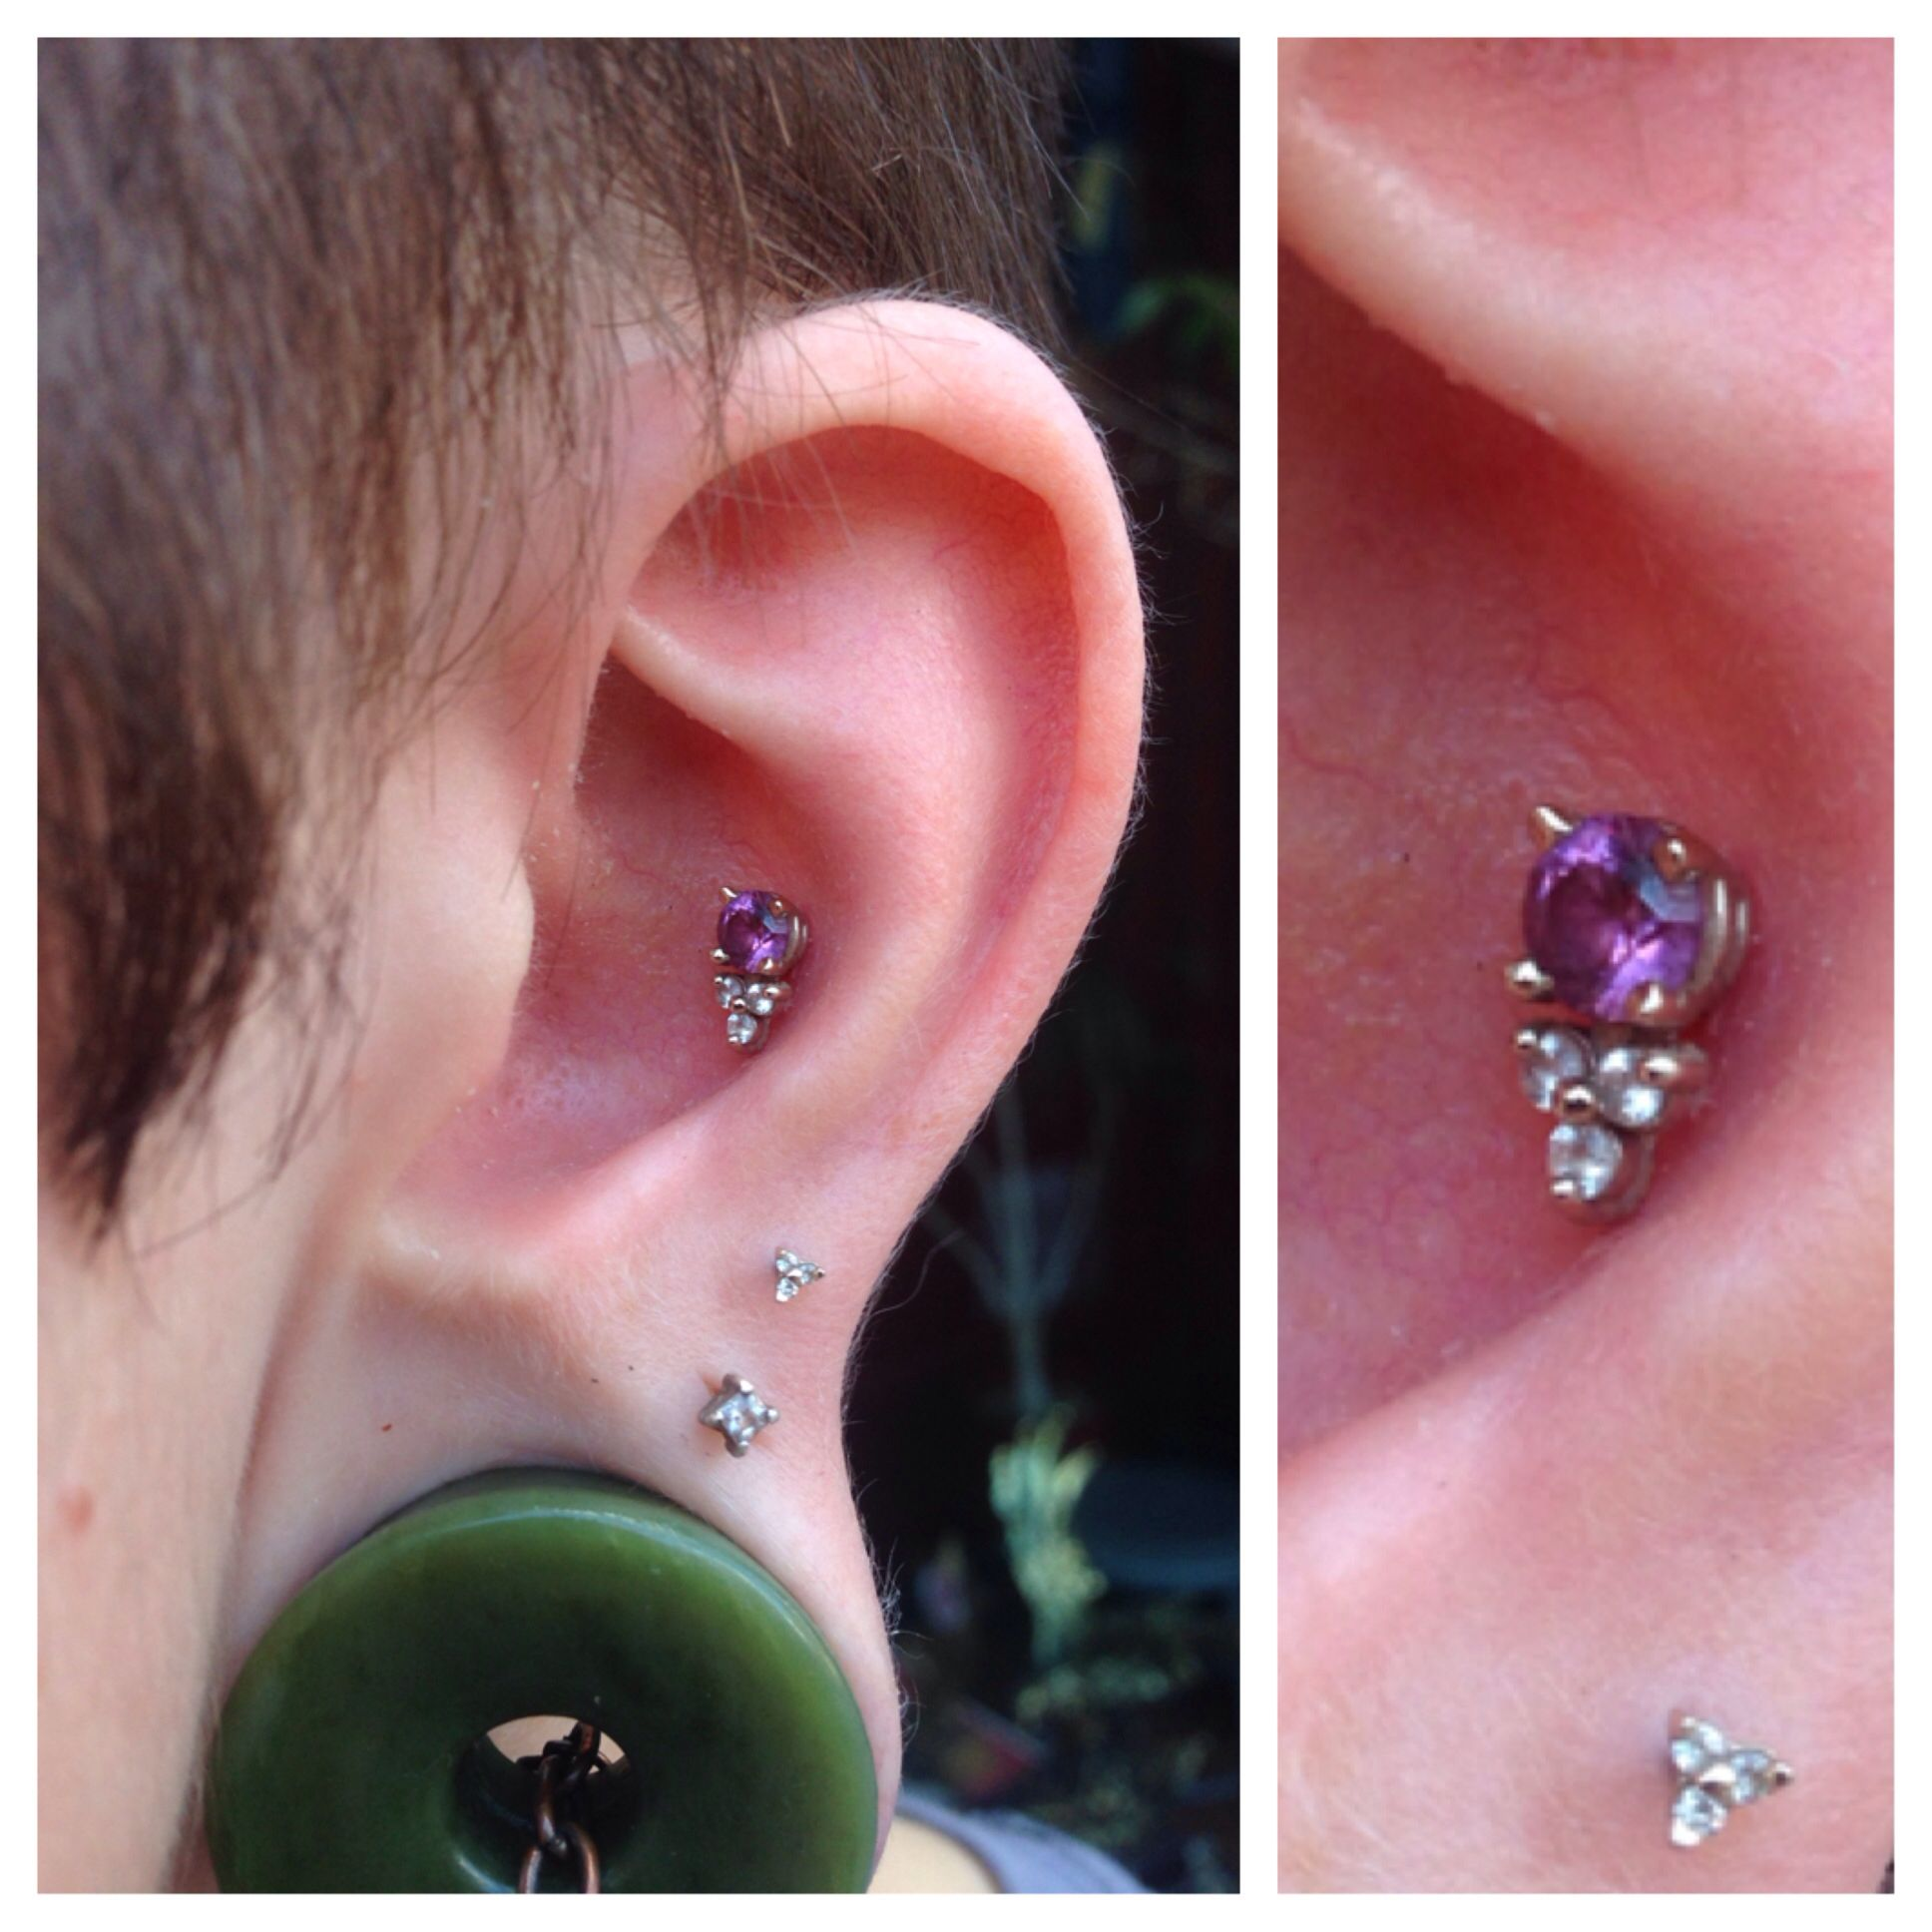 Healed conch piercing with 14k gold jewelry fr LeRoi. Piercing done by me at The Shaman's Den, Binghamton, NY.